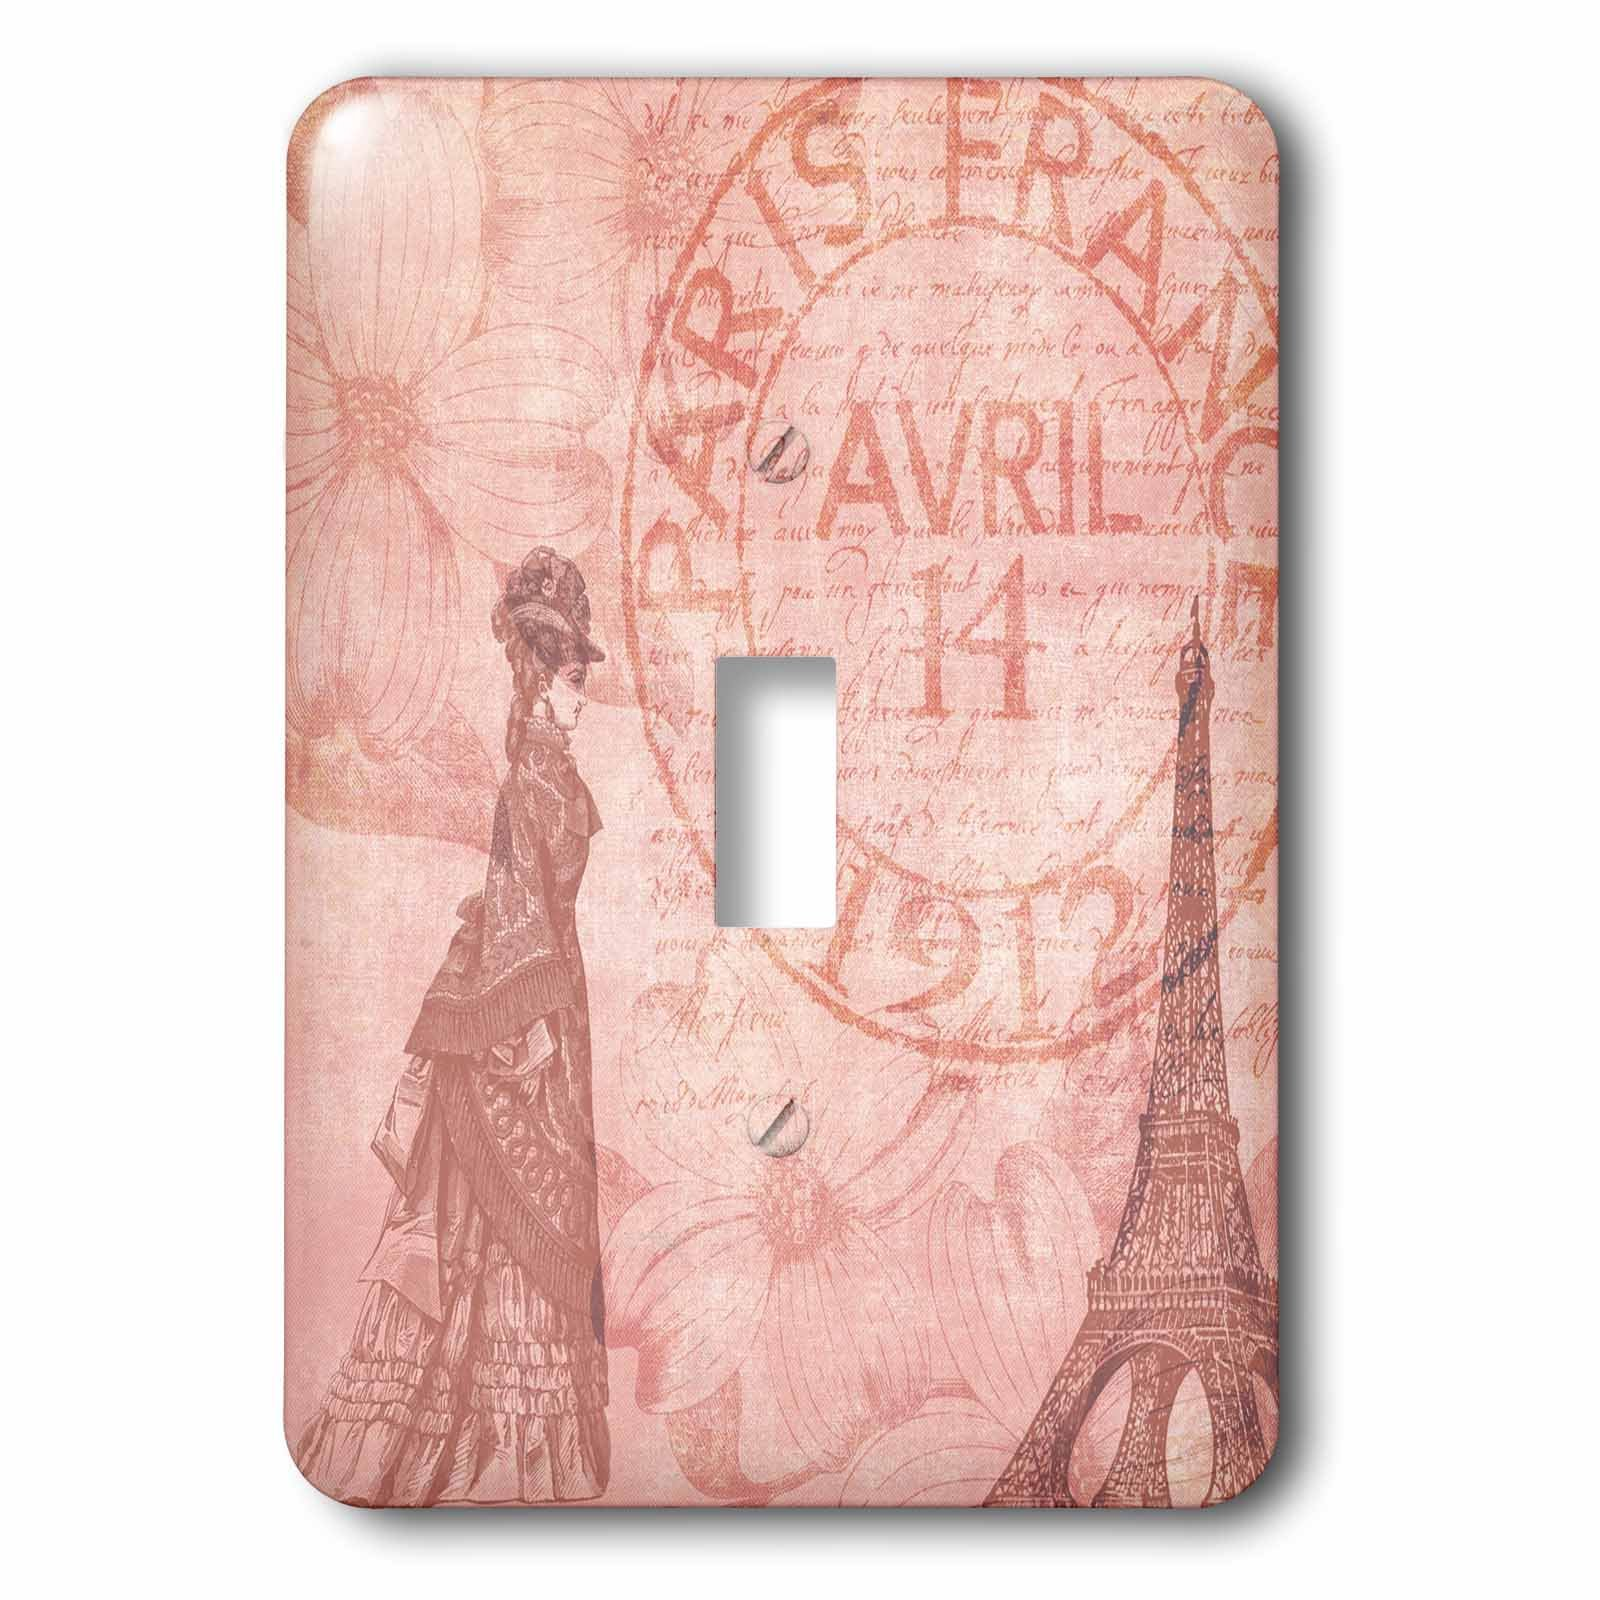 3dRose lsp_79365_1 Vintage French Lady in Paris with Eiffel Tower and Dogwood Flowers Single Toggle Switch